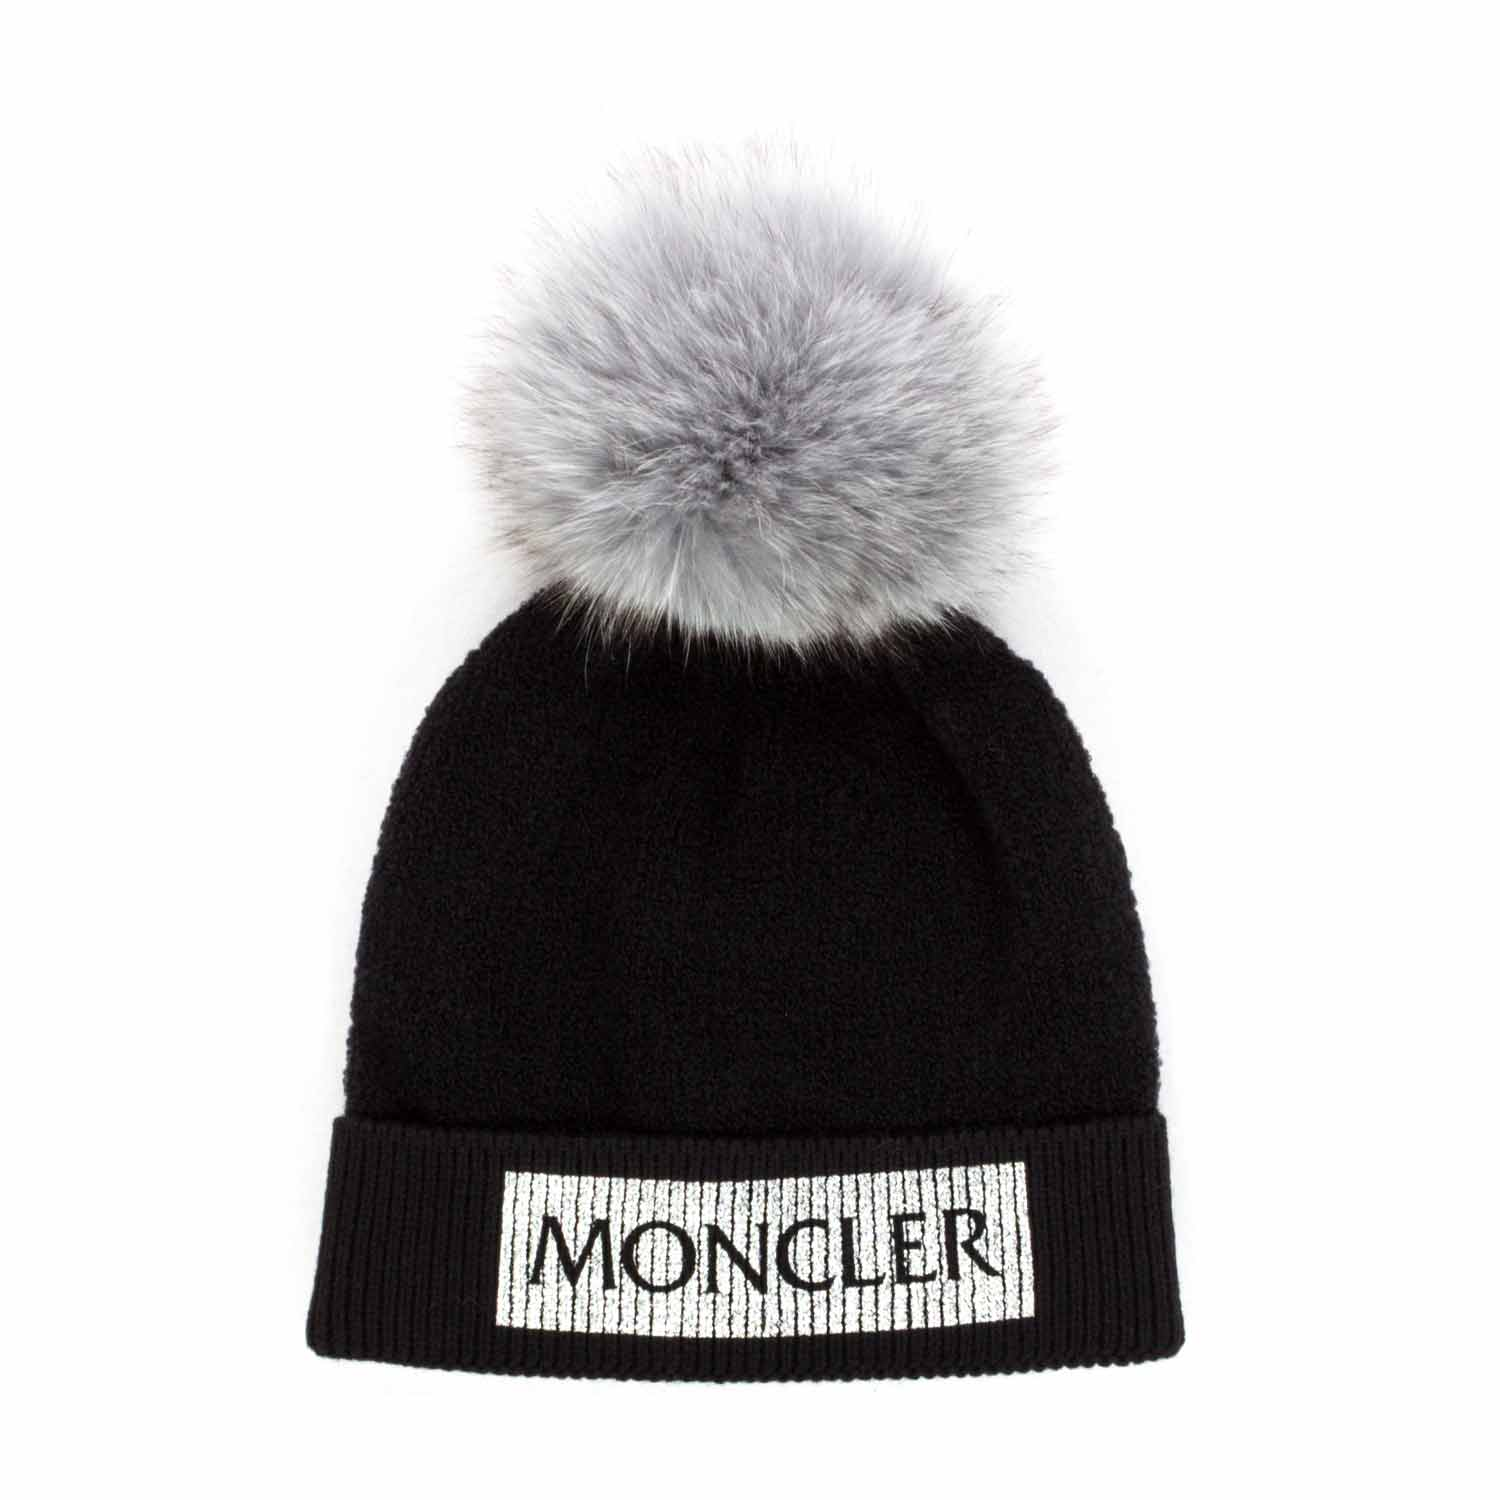 337893c5b7e9e Moncler - Cap With Fur Pon Pon For Girls - annameglio.com shop online